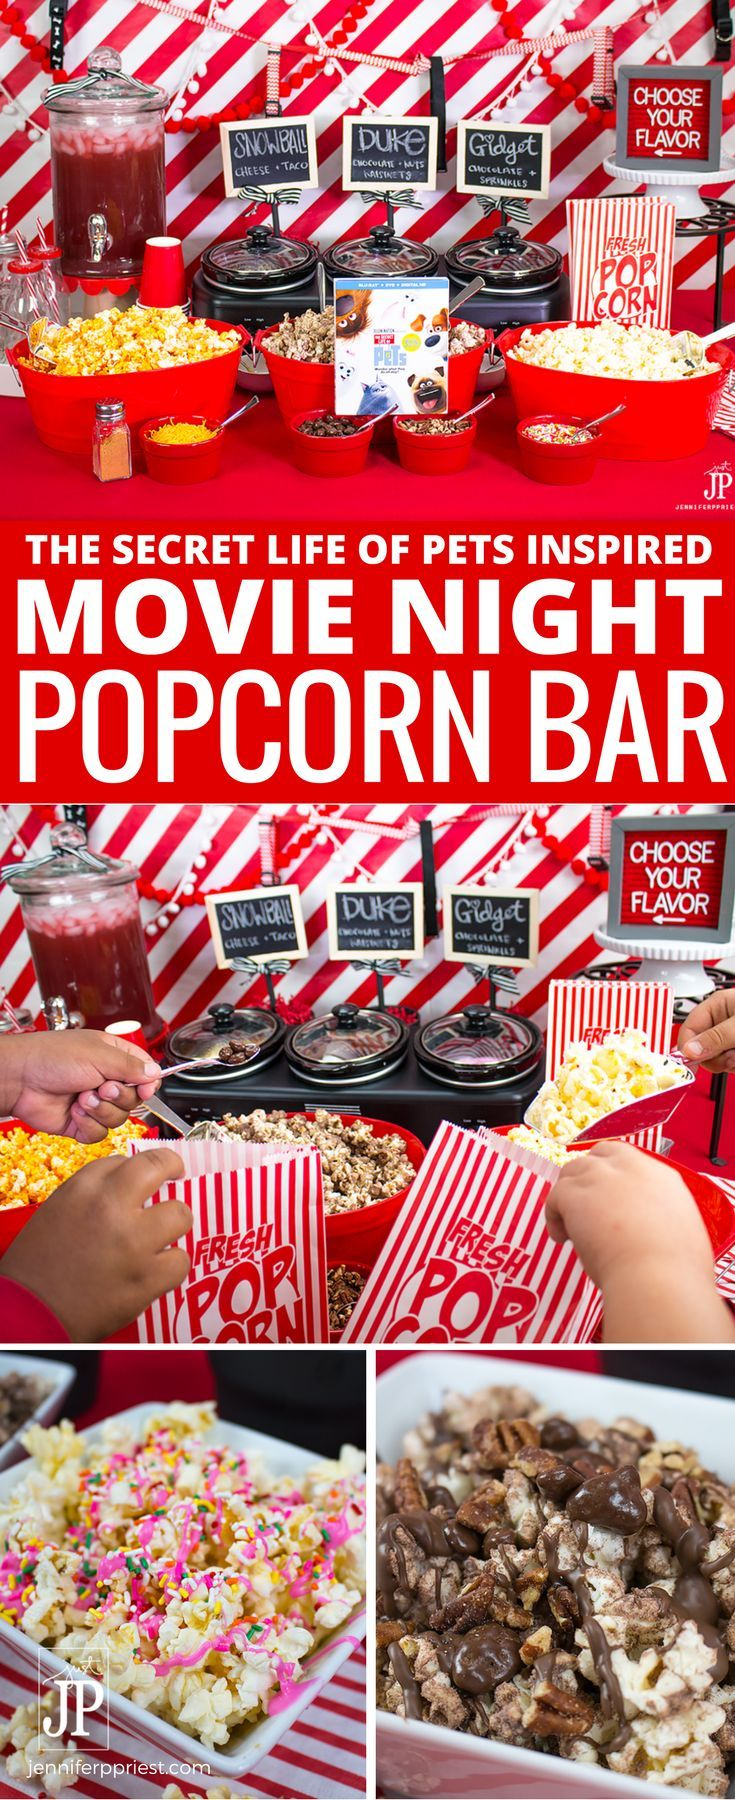 DIY Popcorn Bar: To celebrate that The Secret Life of Pets is now on Blu-ray and DVD, we created a DIY popcorn bar with flavors inspired by the movie's characters. Get the recipe to create THREE The Secret Life of Pets inspired popcorn mixes for your next movie night AND see how to set up a DIY Popcorn Bar.